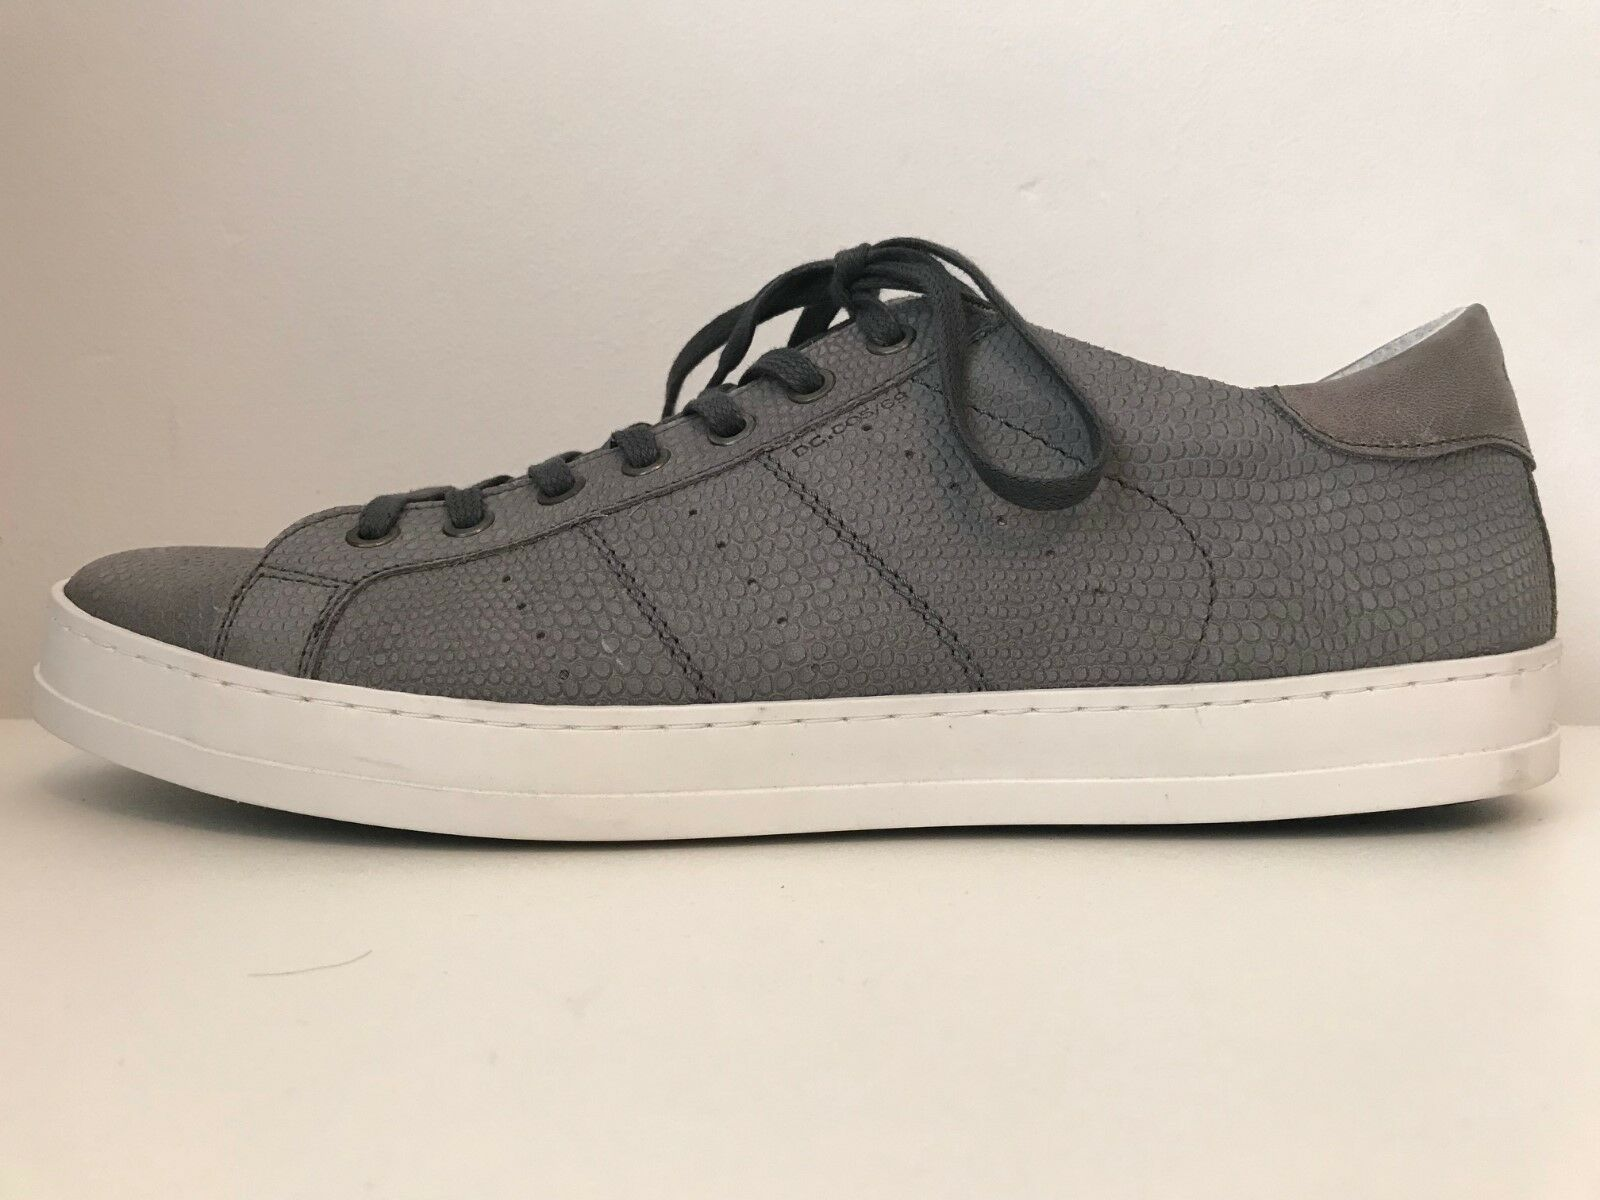 RAVALLE NEW Gris    95 LEATHER TRAINERS SNEAKERS 11 45 Blanc SIDE Chaussures